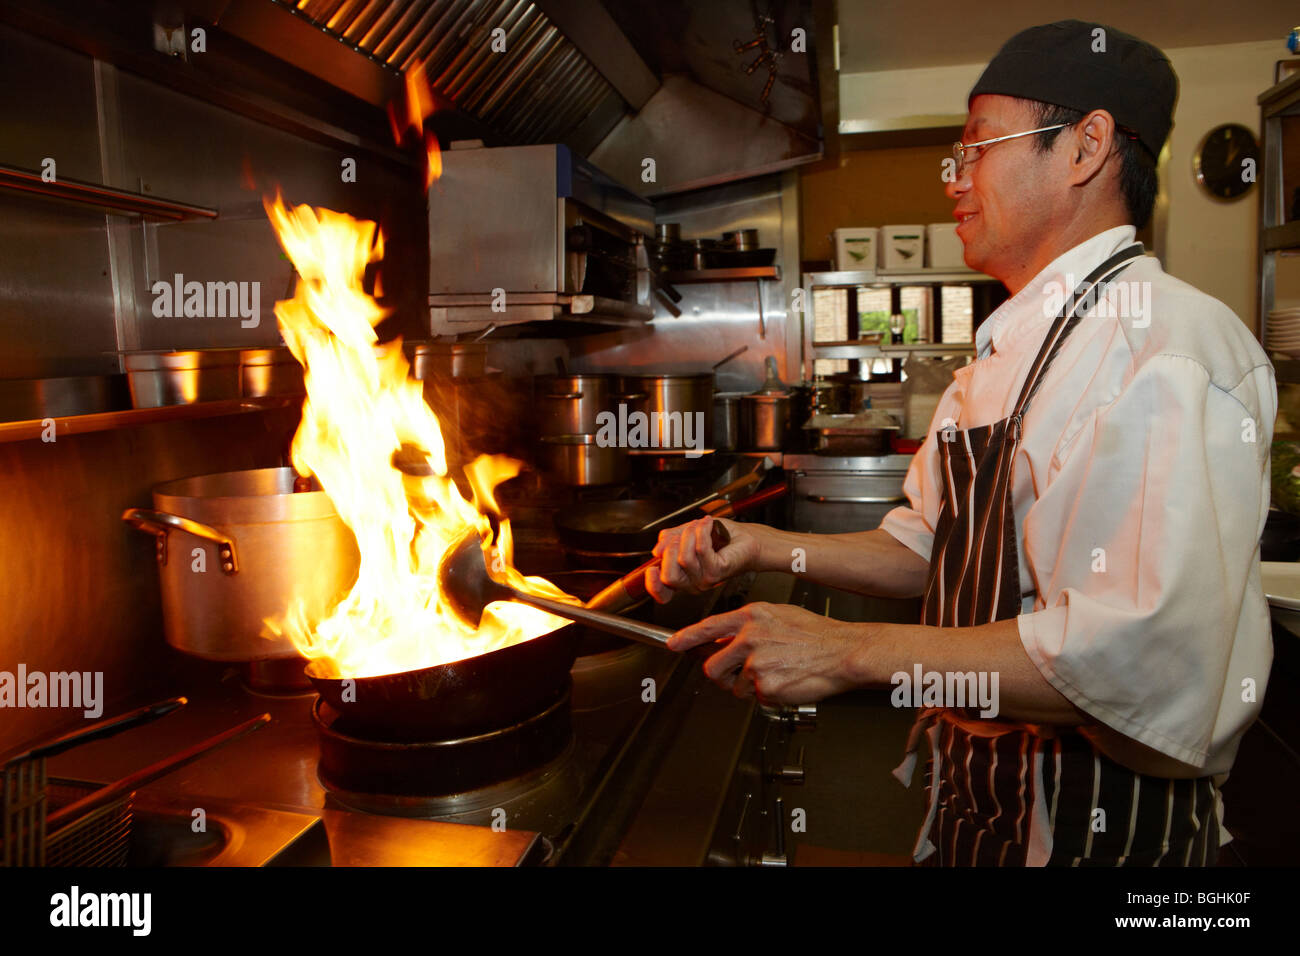 Restaurant Kitchen Chefs asian chef cooking in restaurant kitchen stock photo, royalty free